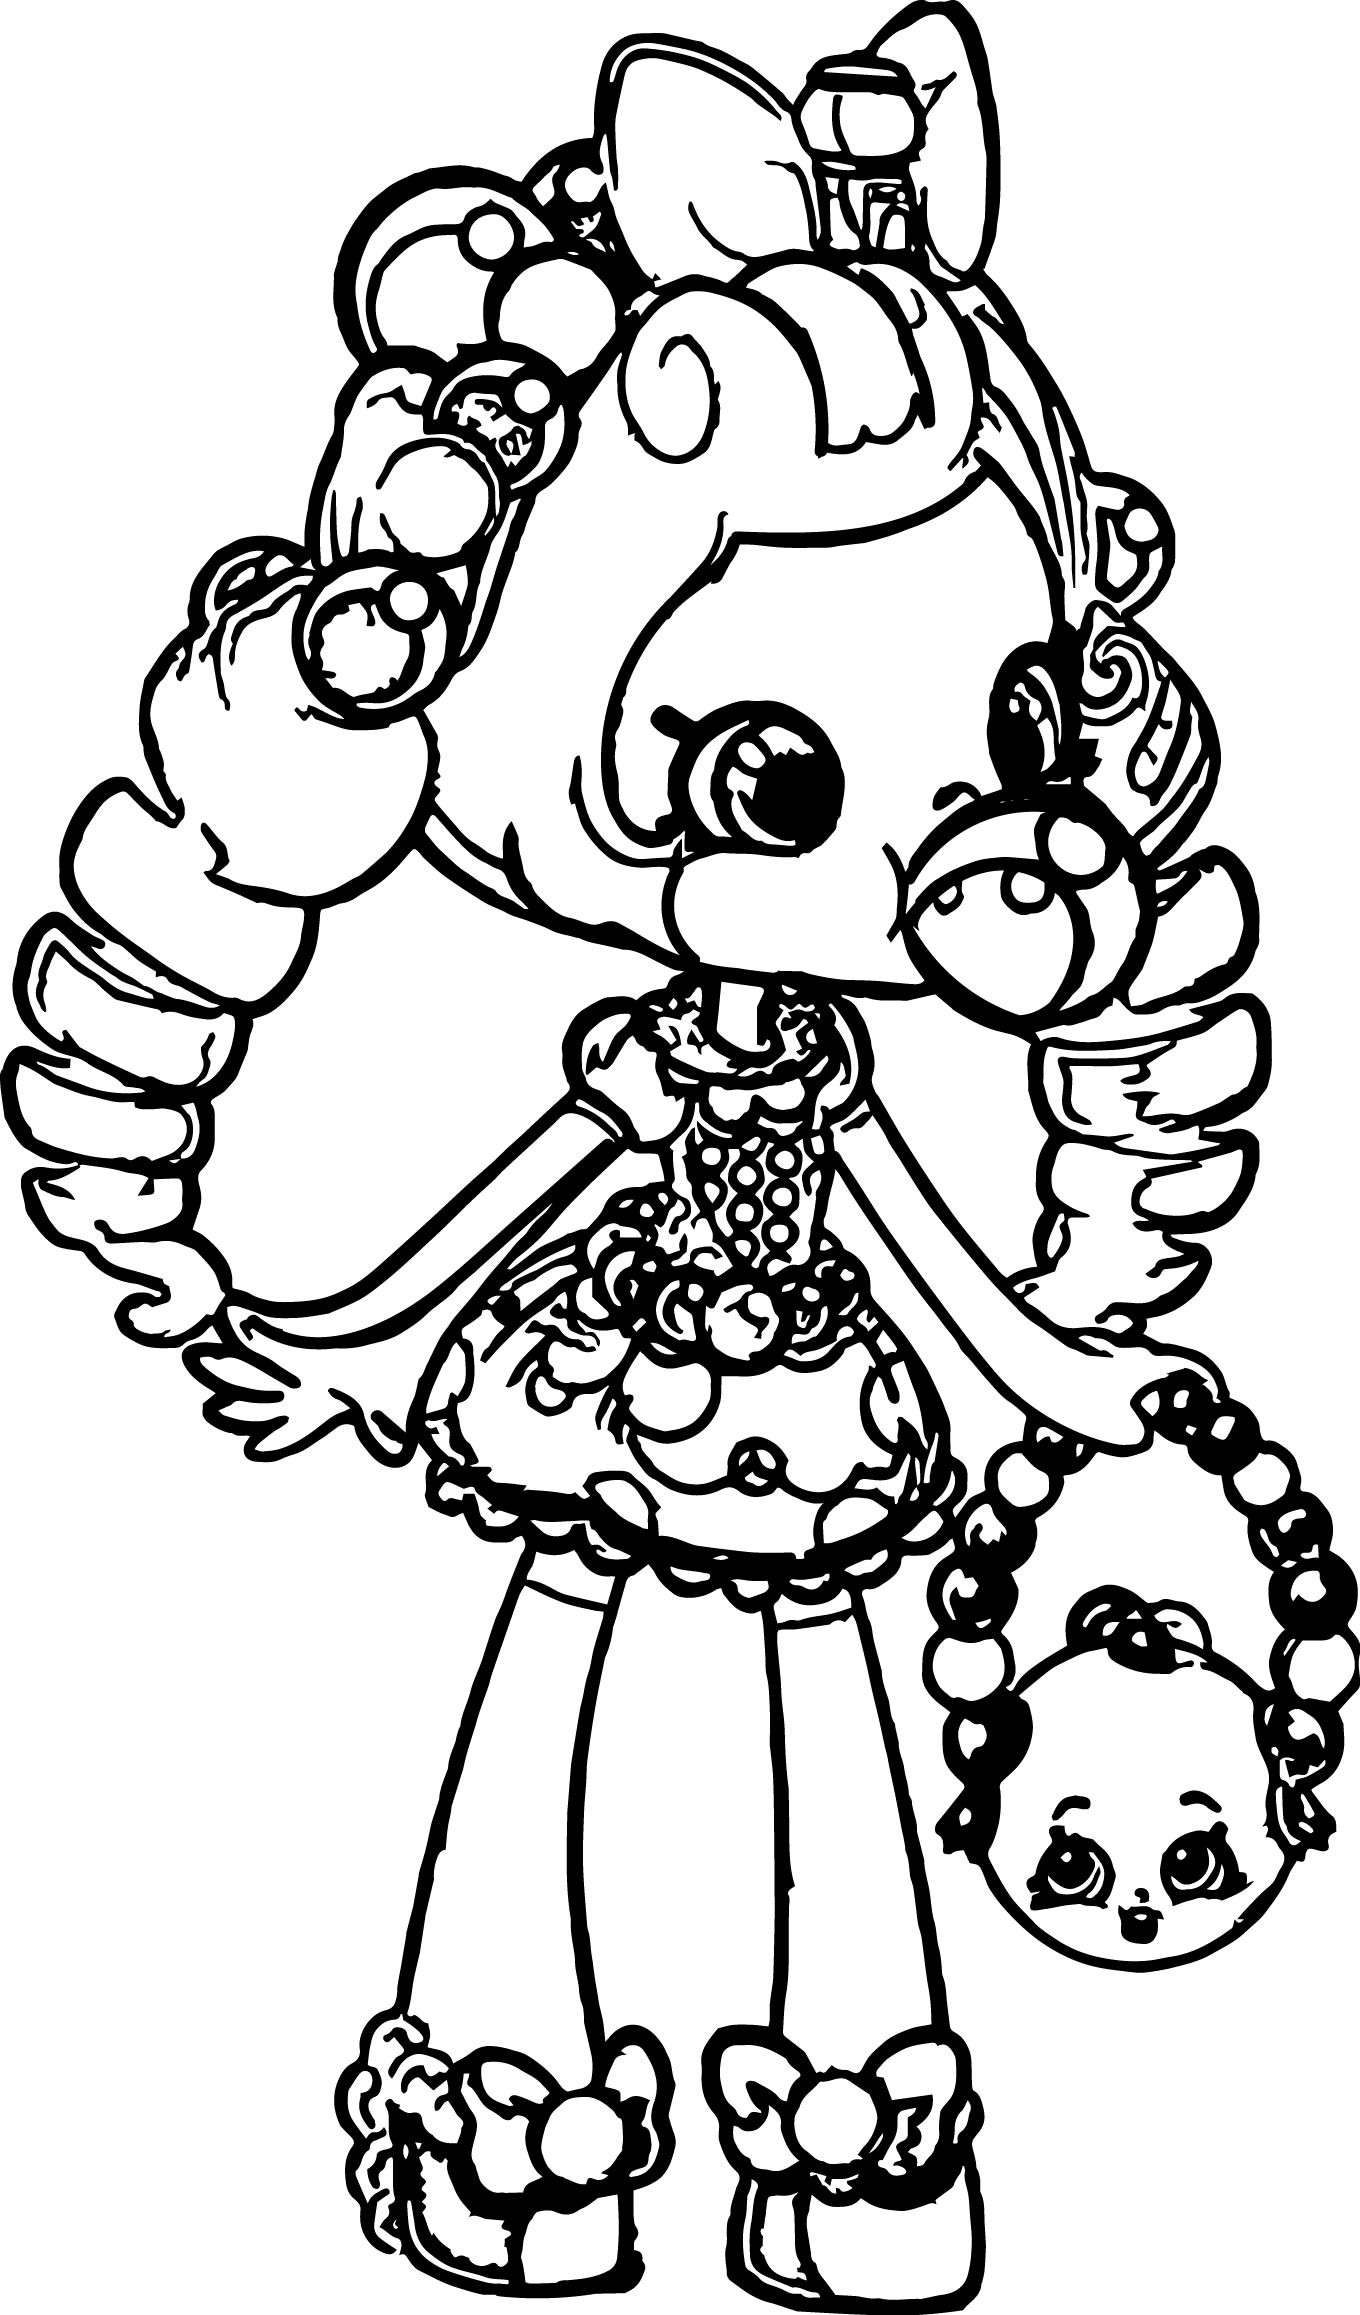 Best ideas about Coloring Sheets For Girls That Are 9 . Save or Pin Shopkins Coloring Pages For Girls Download 9 Shopkins Now.